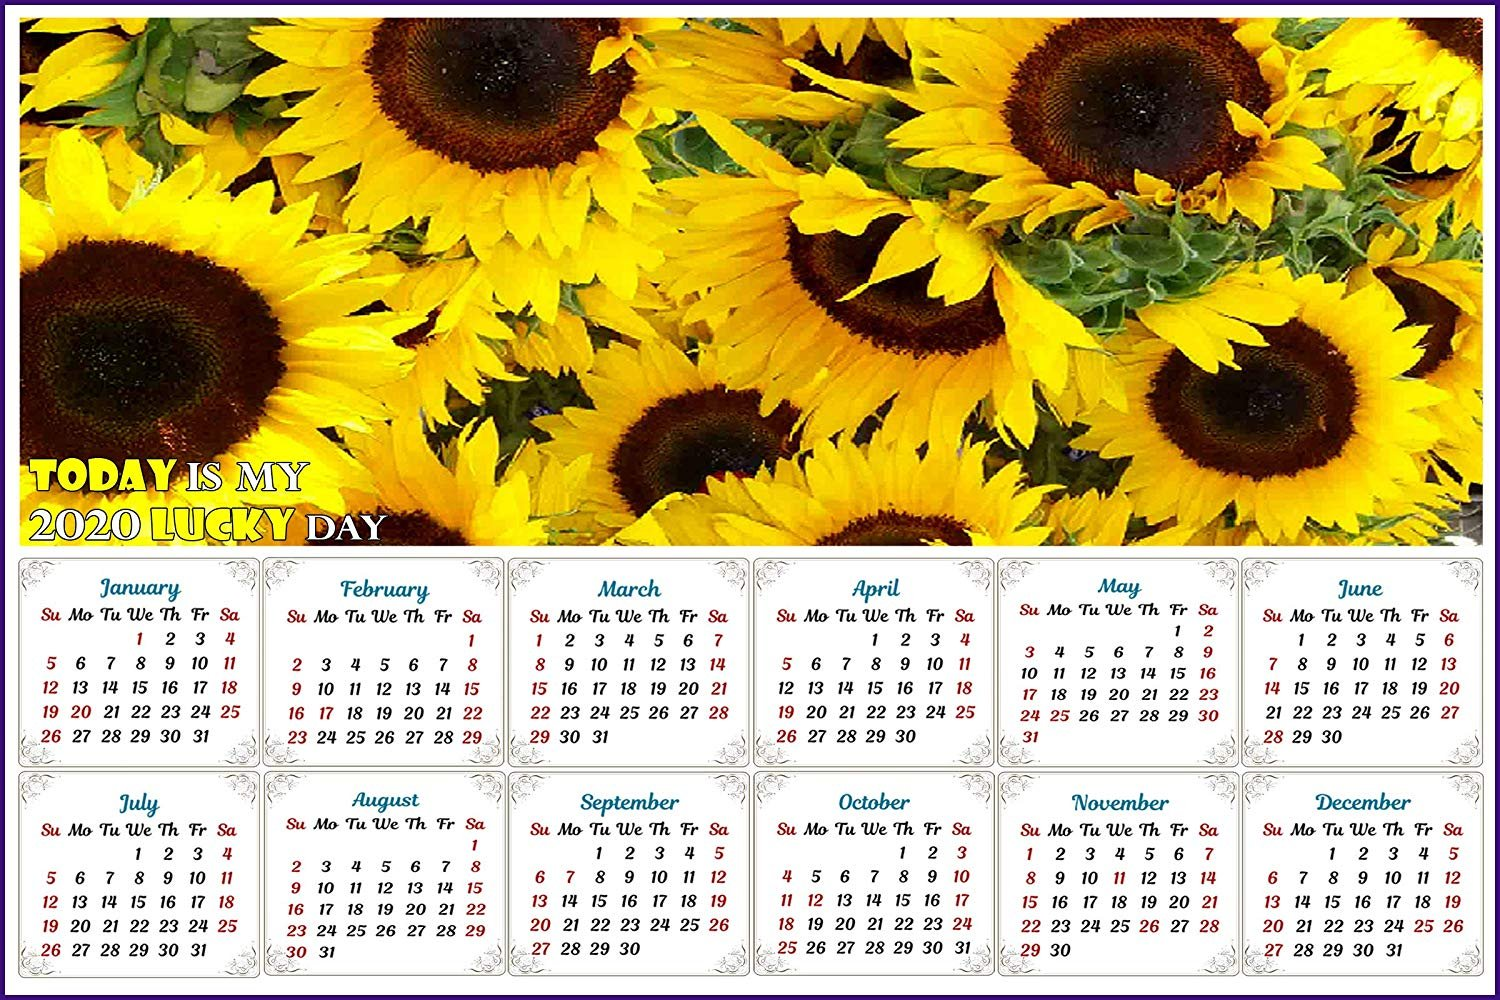 2020 Magnetic Calendar - Calendar Magnets - Today is My Lucky Day - Sunflowers